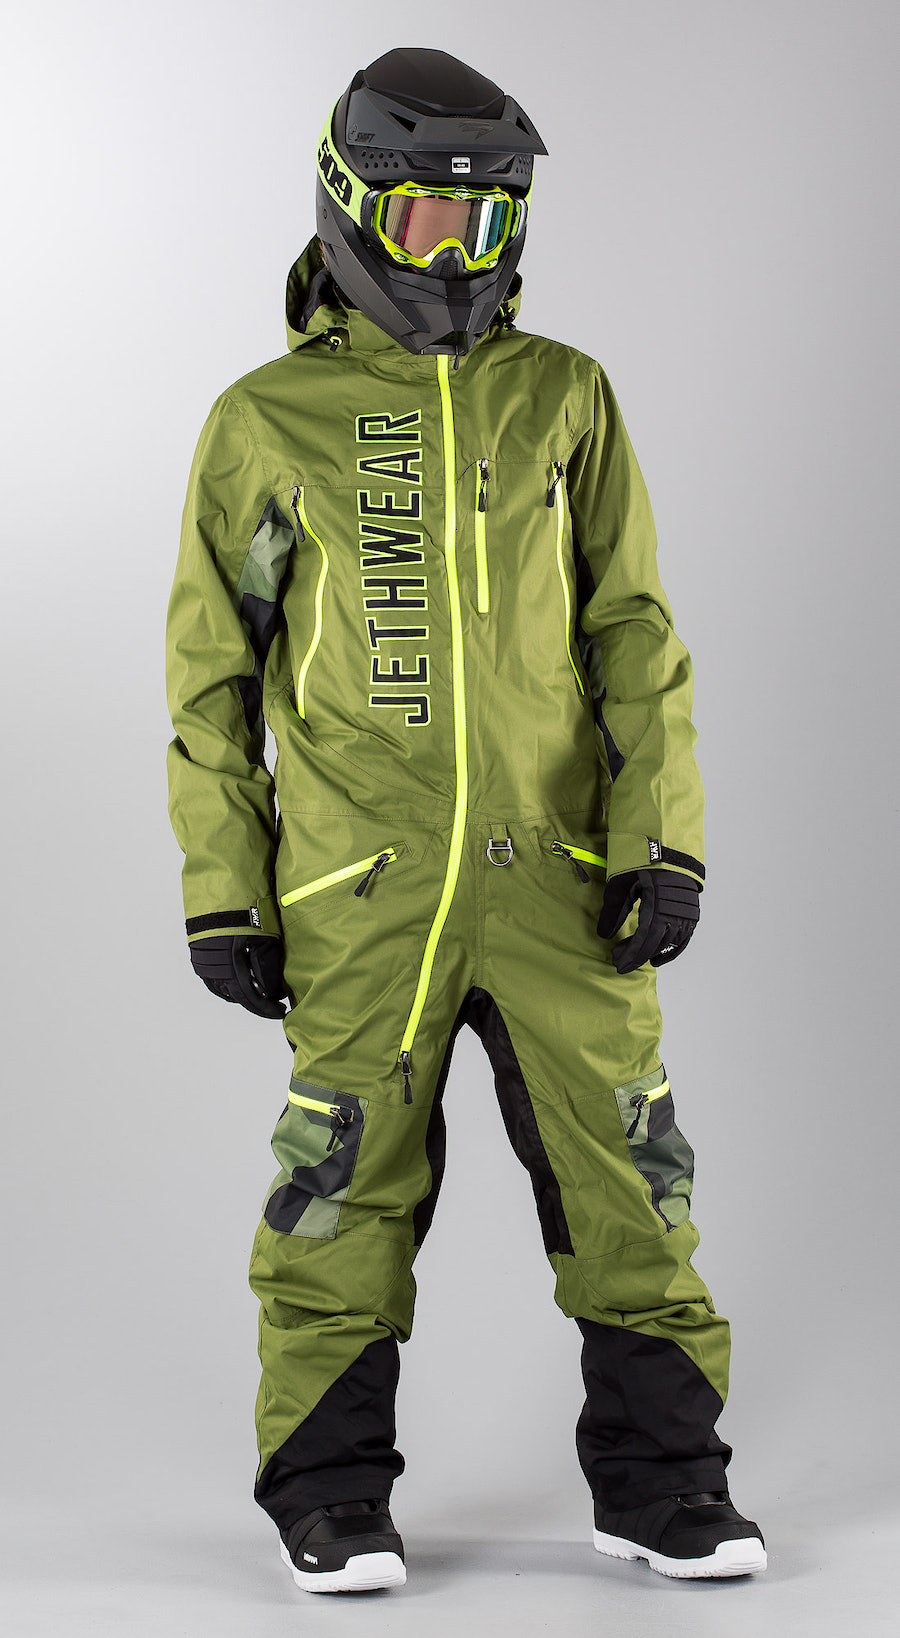 Jethwear The One  Kale Snowmobile clothing Multi